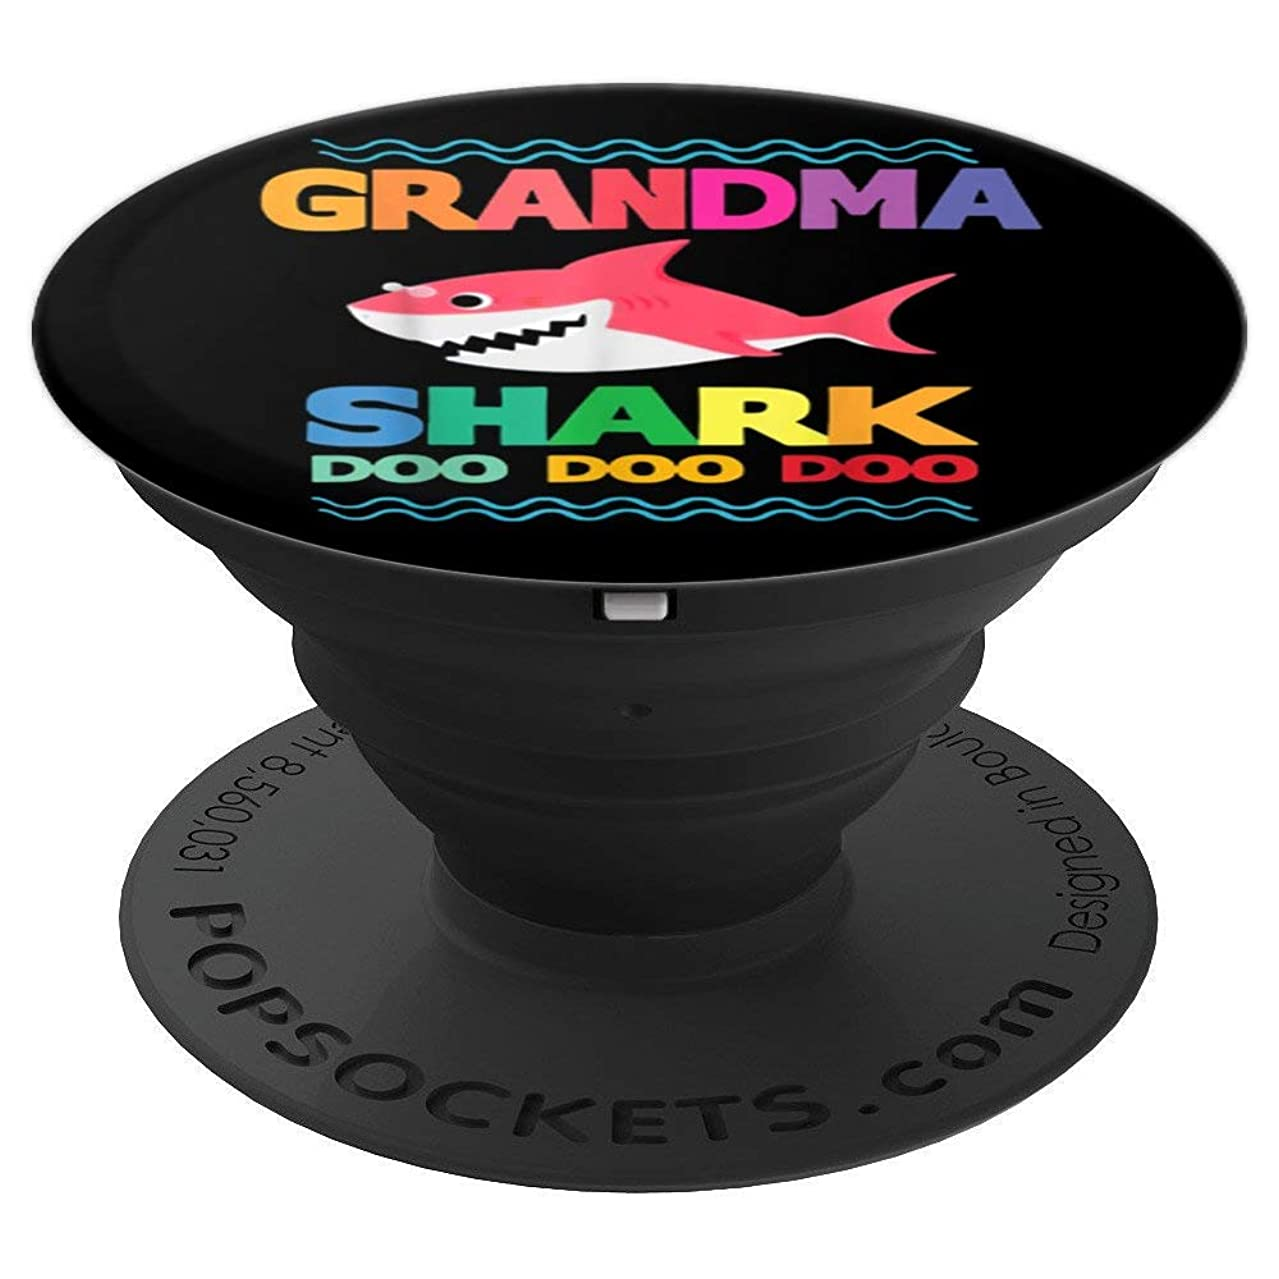 Grandma Shark T-Shirt Doo Doo Grandpa Mommy Daddy Tee - PopSockets Grip and Stand for Phones and Tablets